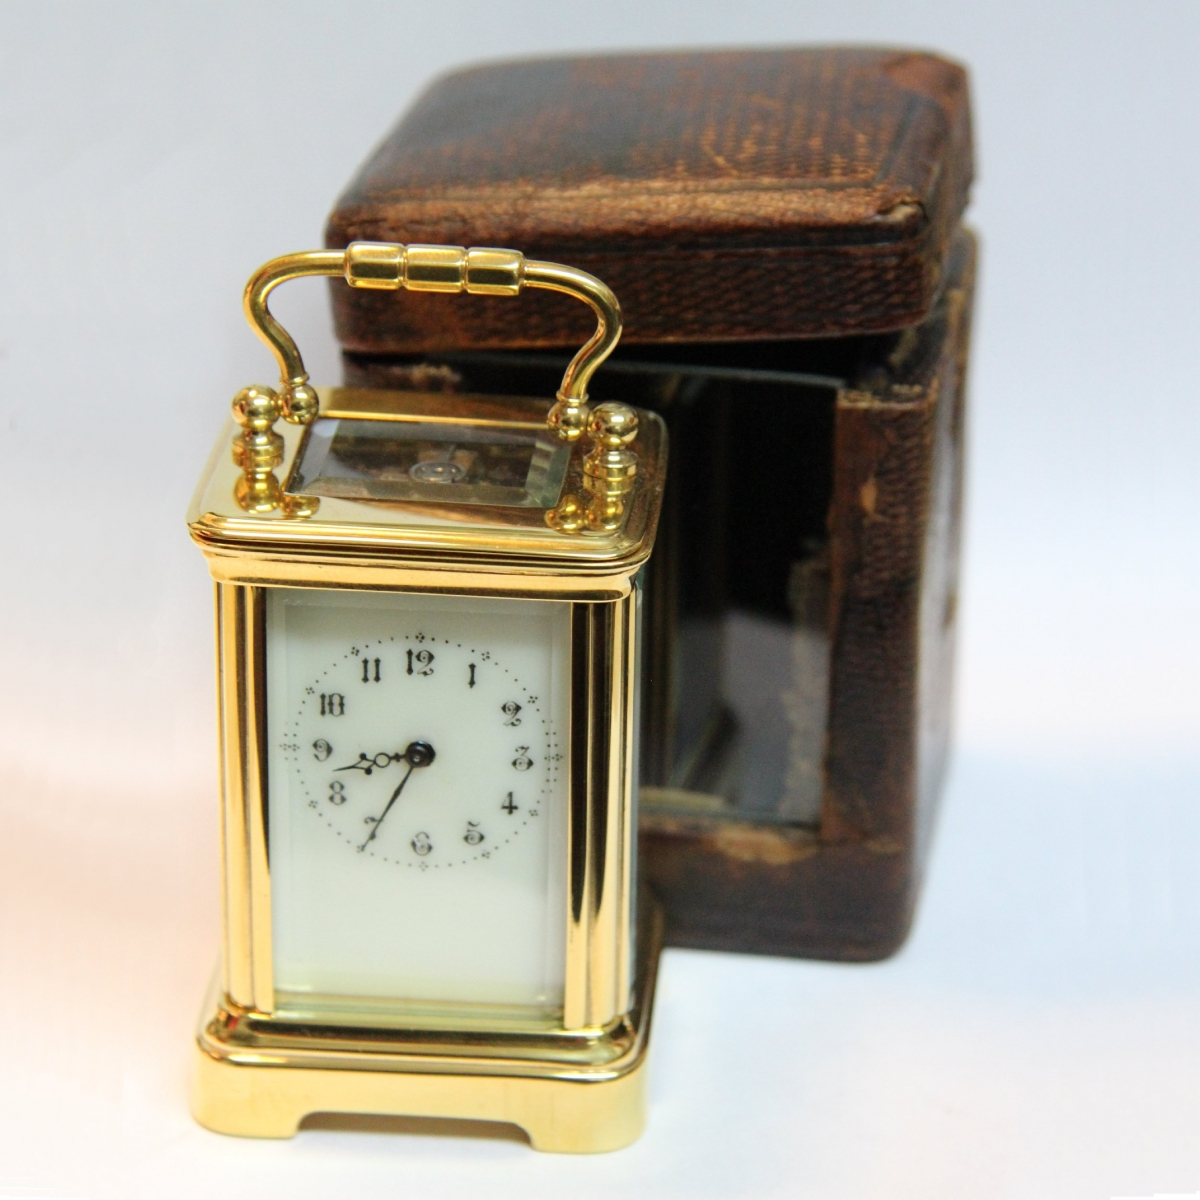 French Bedroom Company Sub Miniature Antique French Carriage Clock Circa 1900